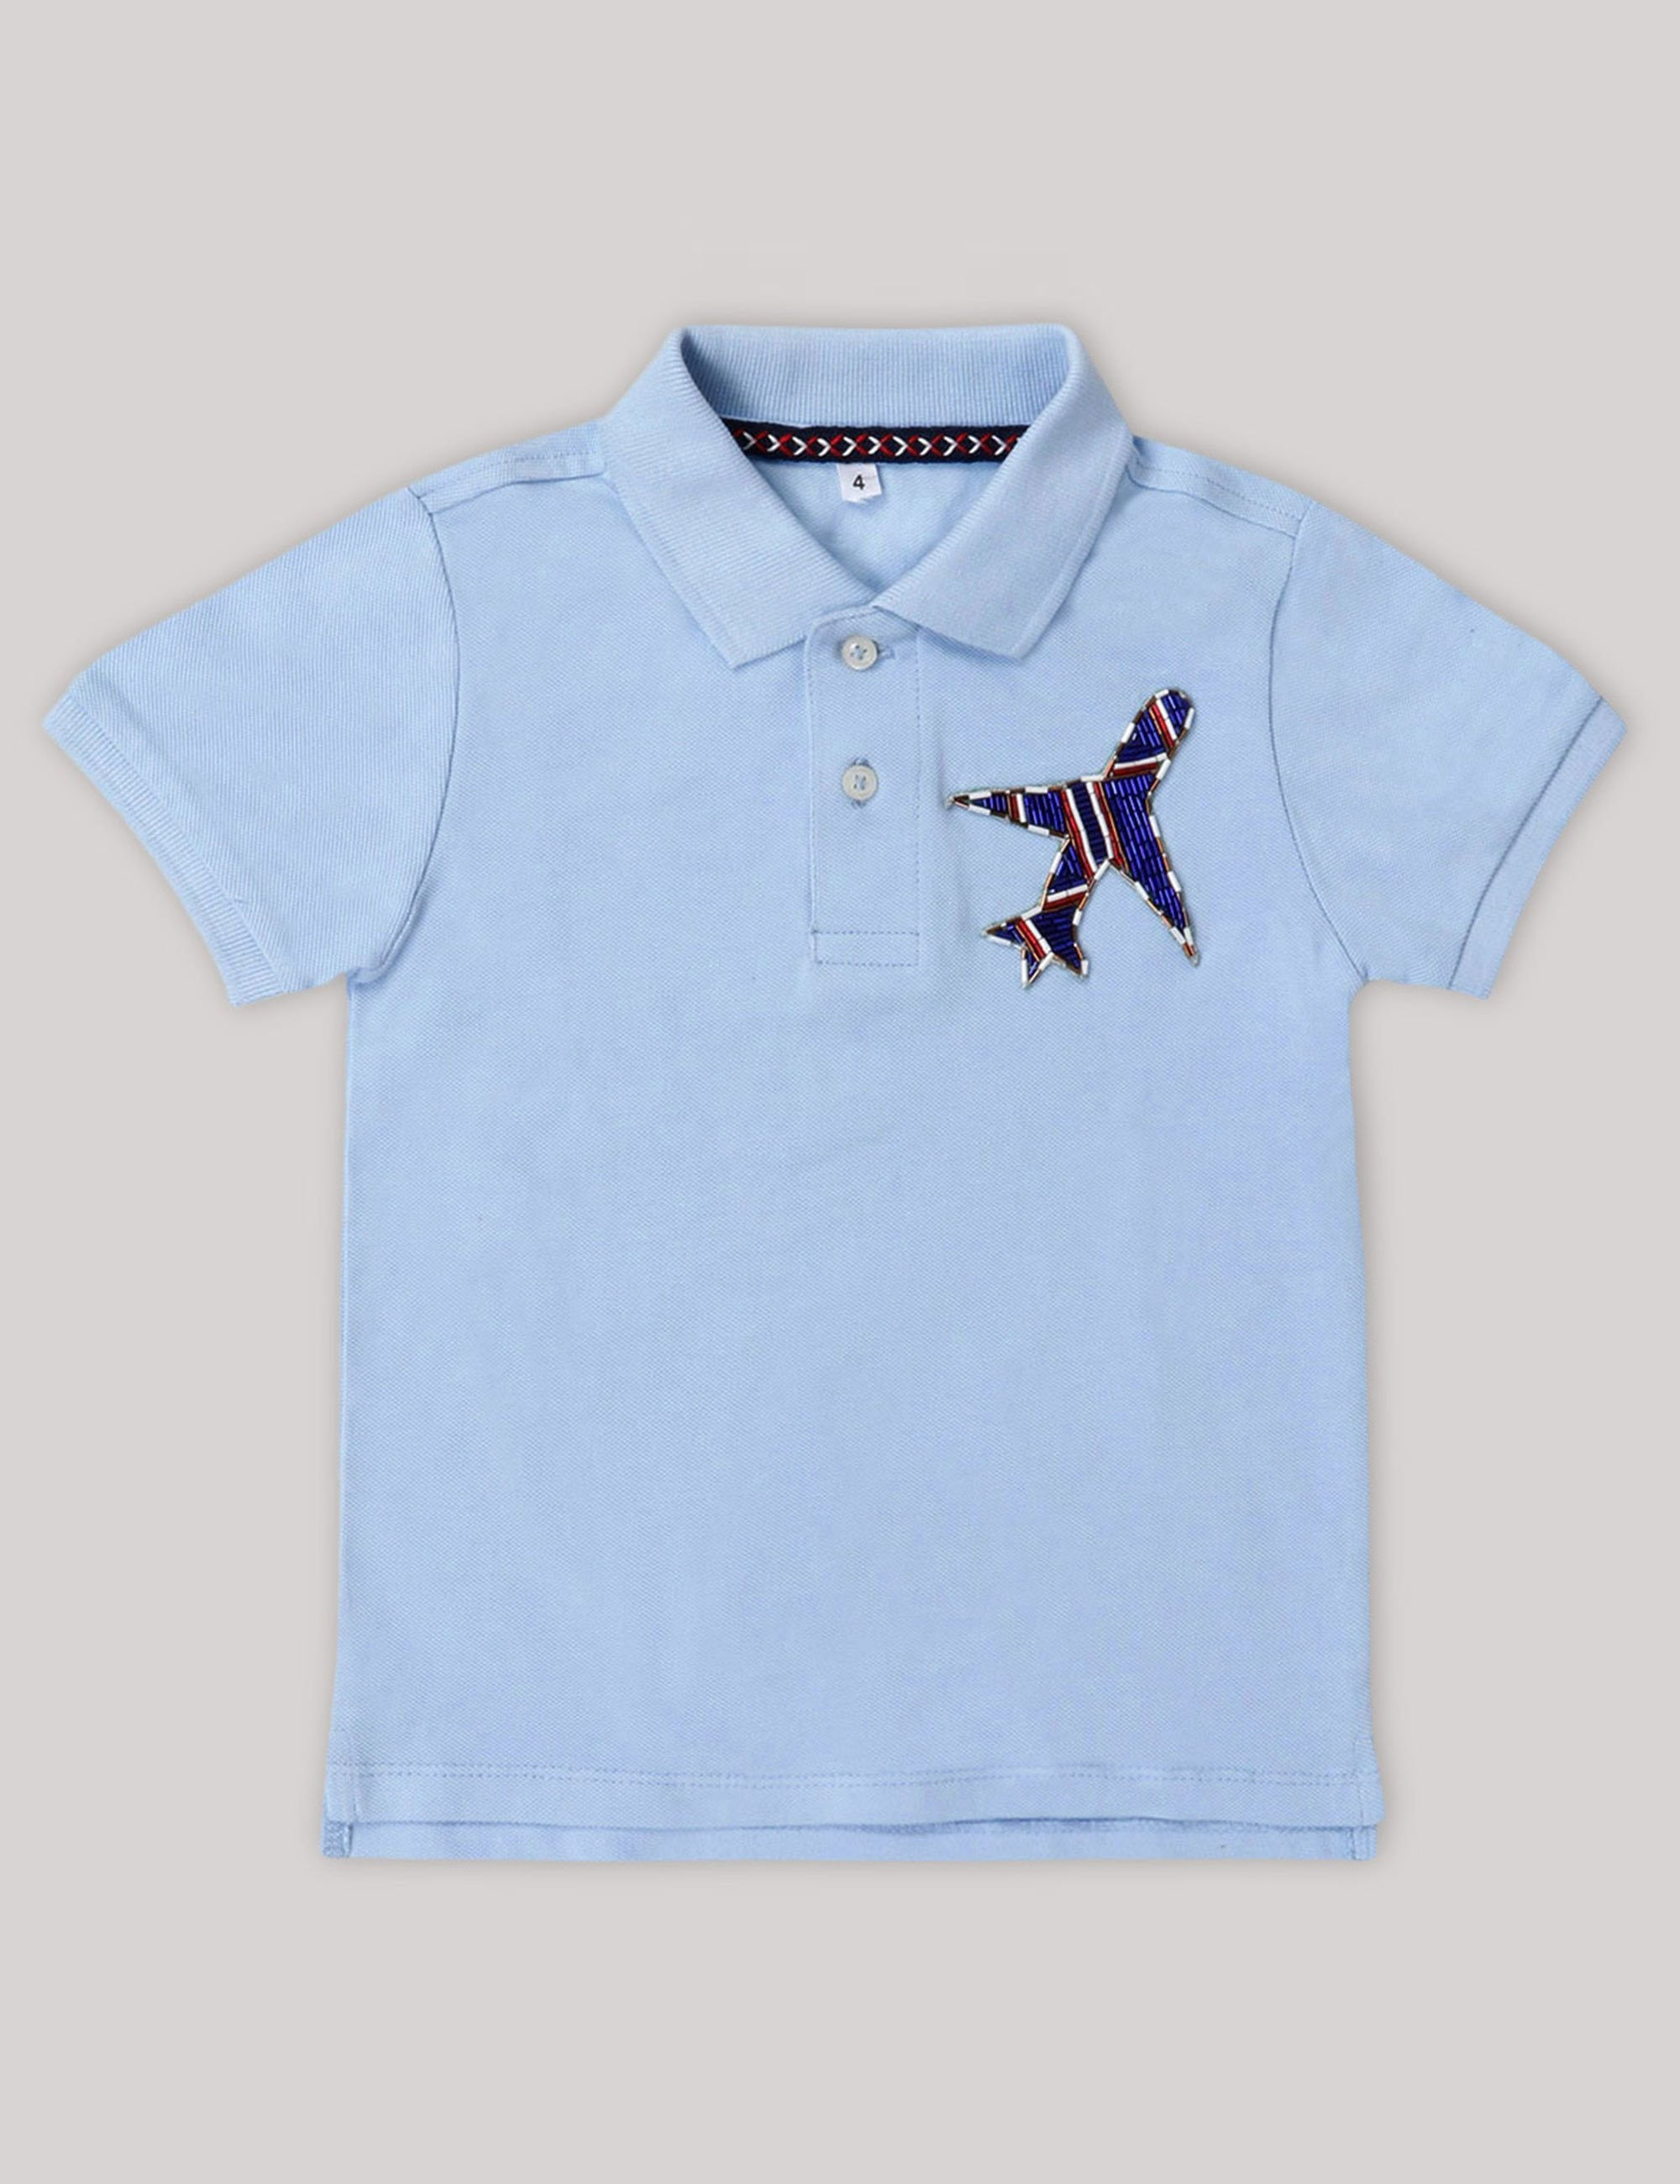 Boys T-Shirt with  Aeroplane Patch on Corner .